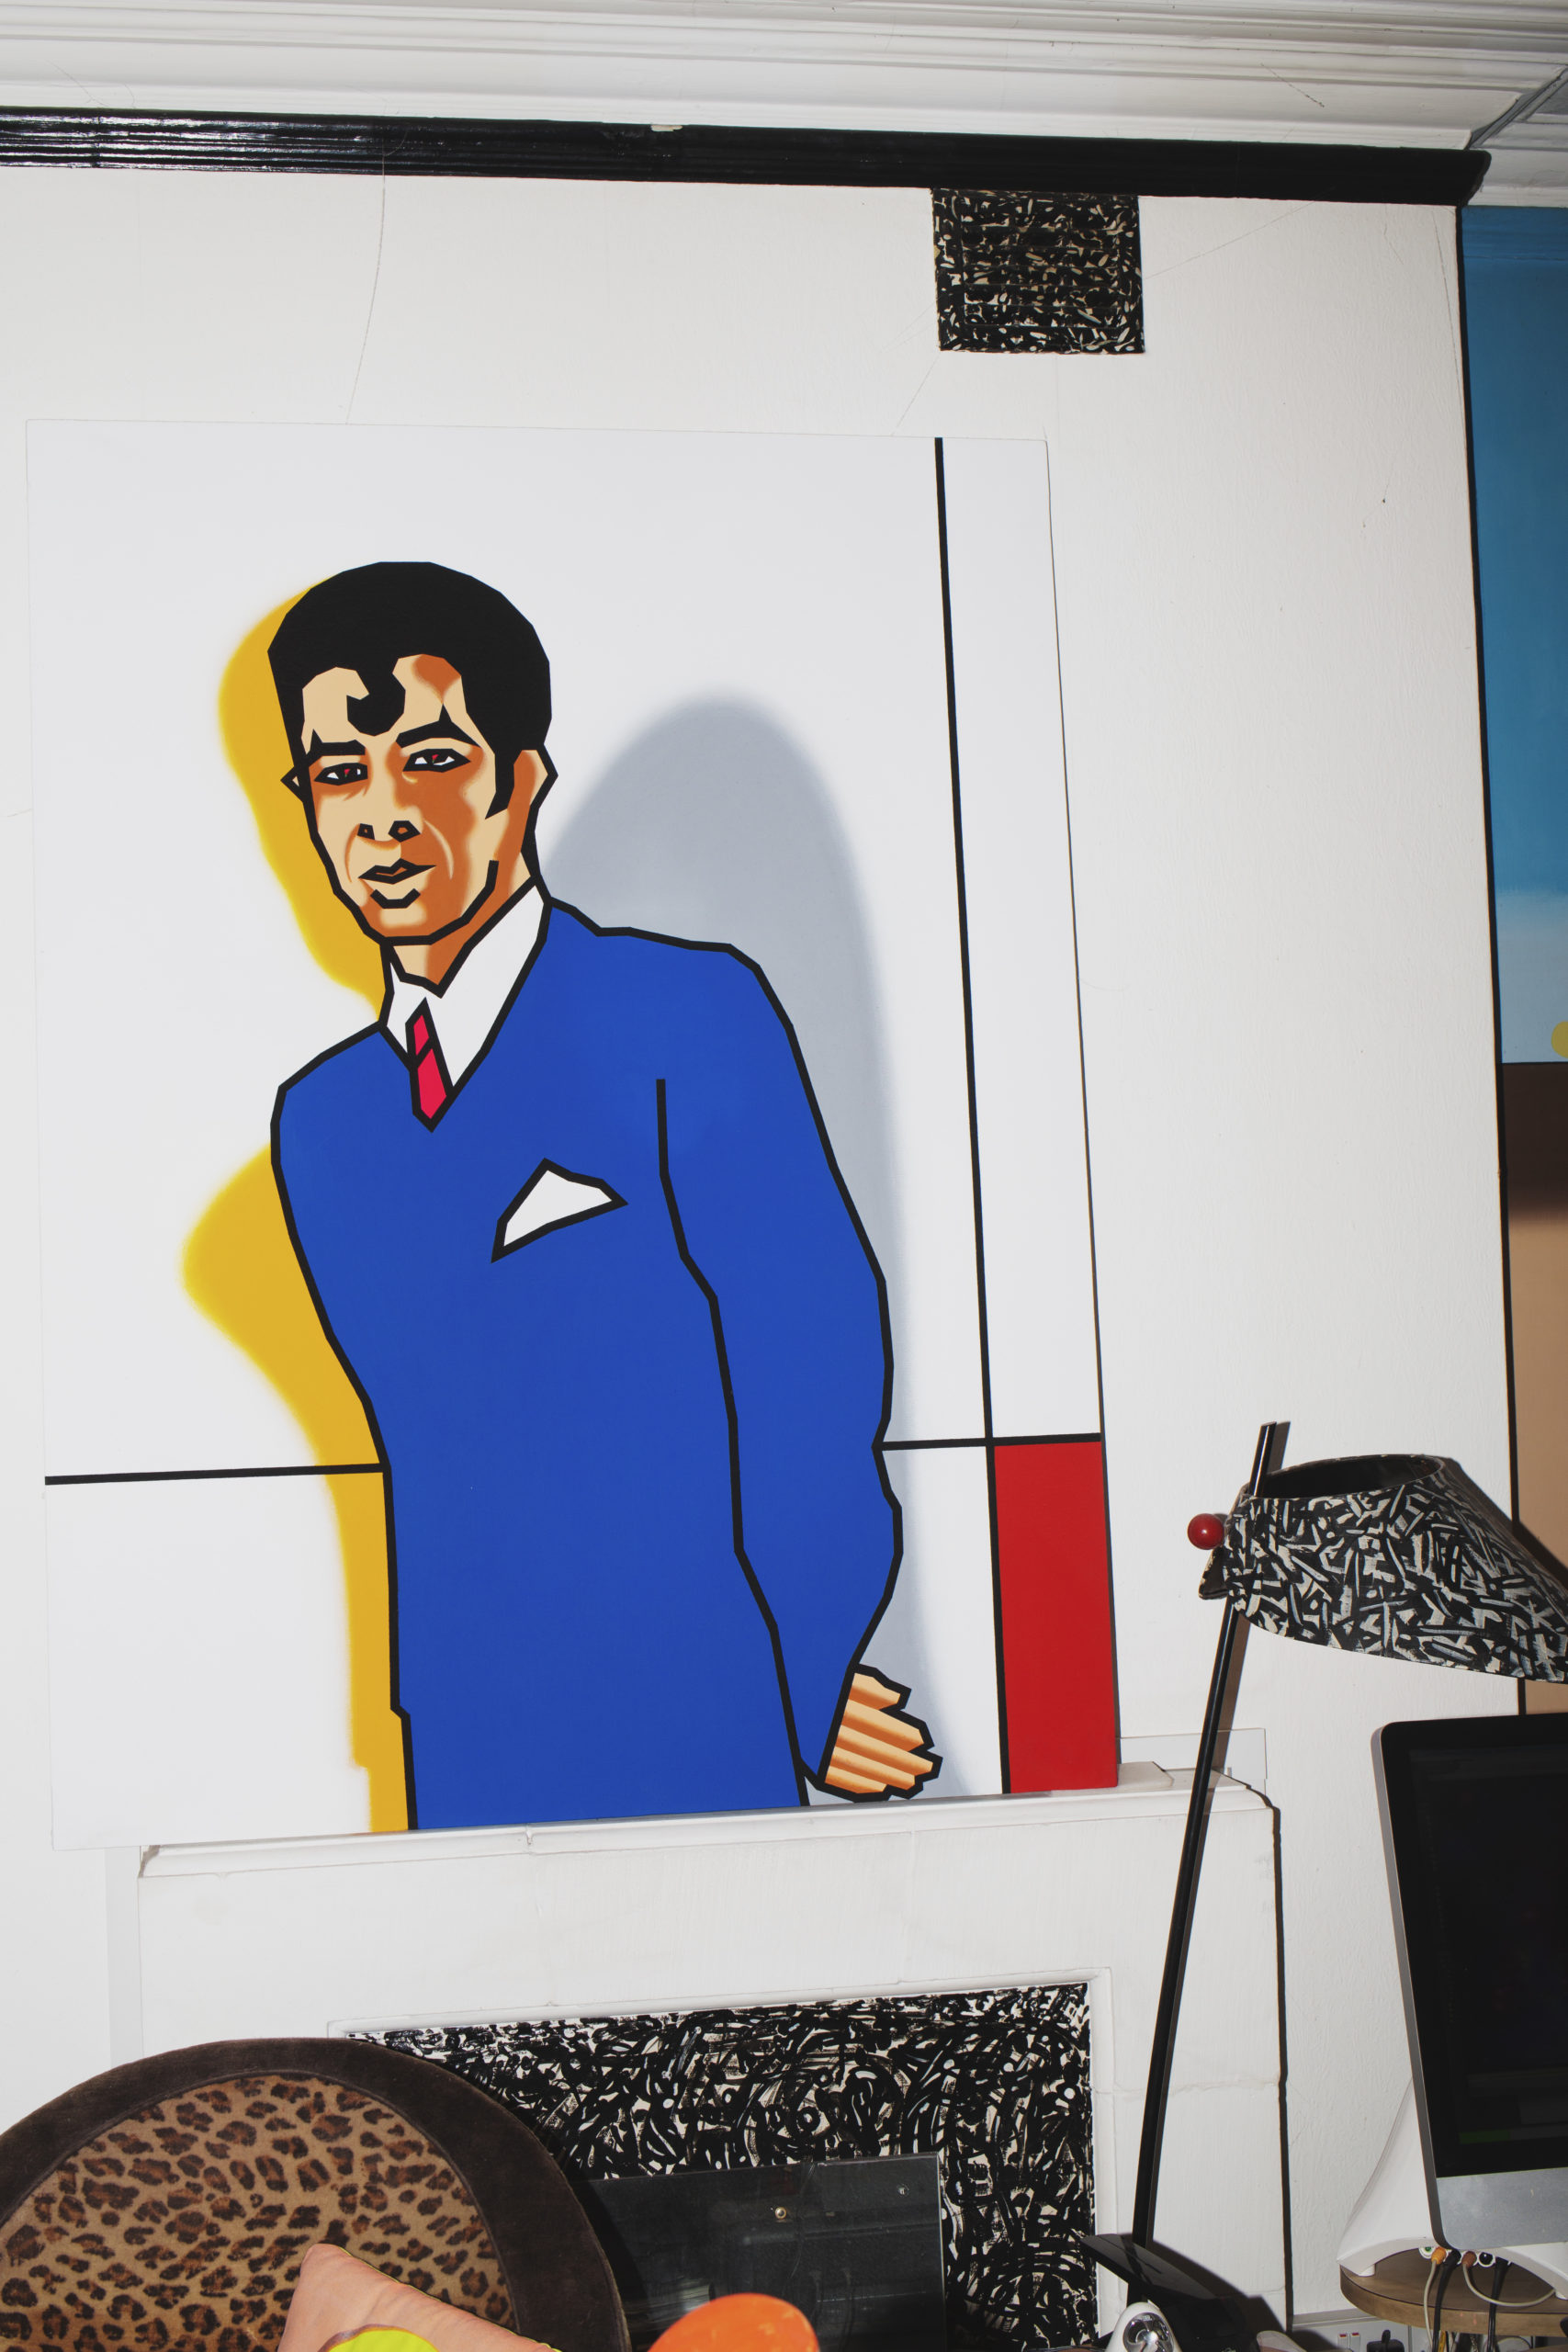 A painting by Duggie Fields in his West London home, photographed by Louise Benson for Elephant